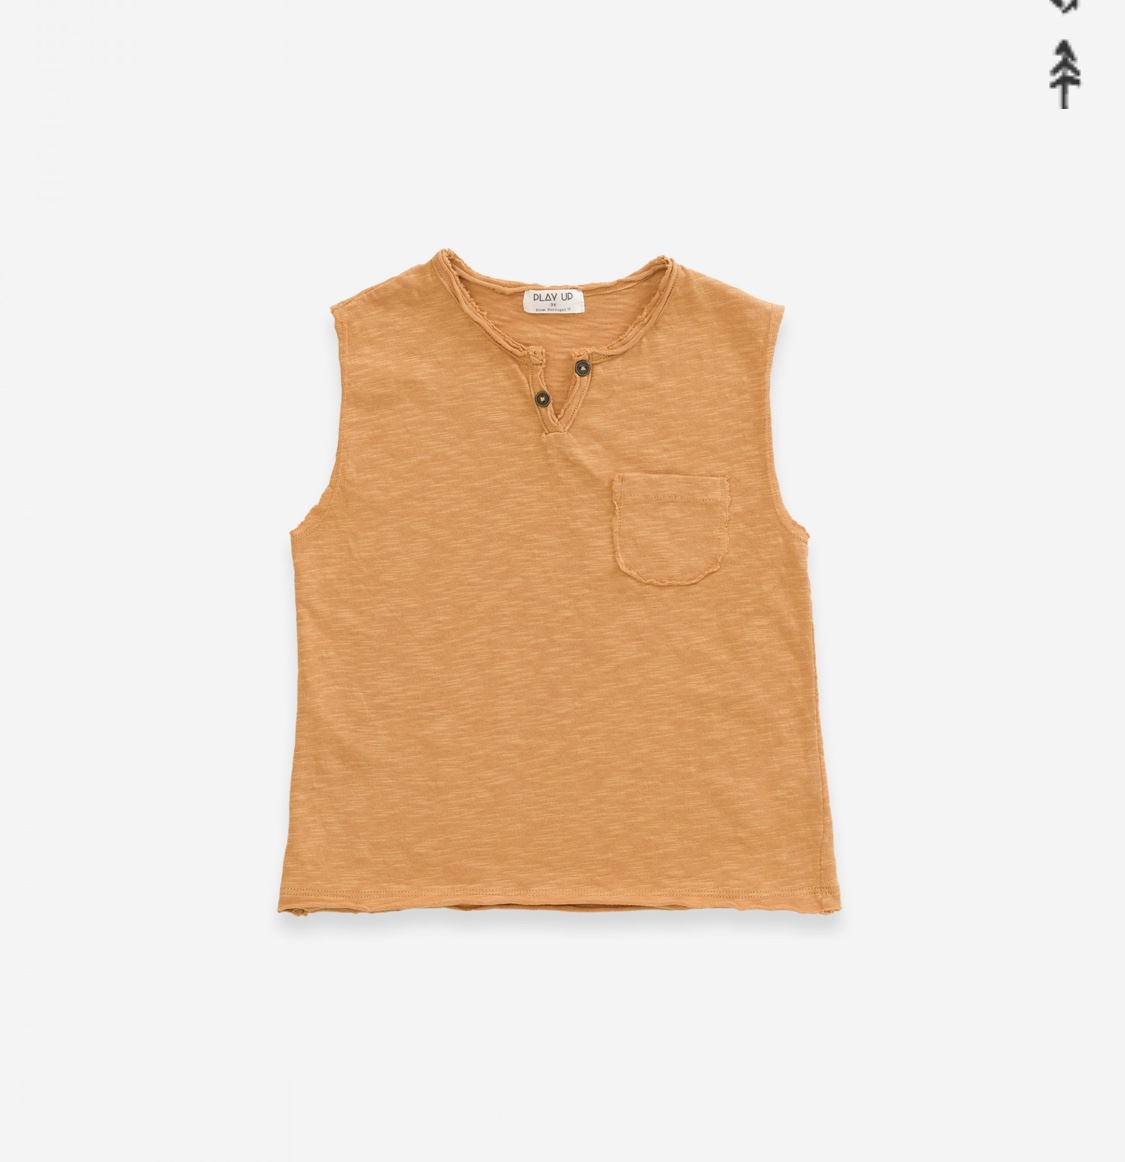 T-shirt in jersey smanicato